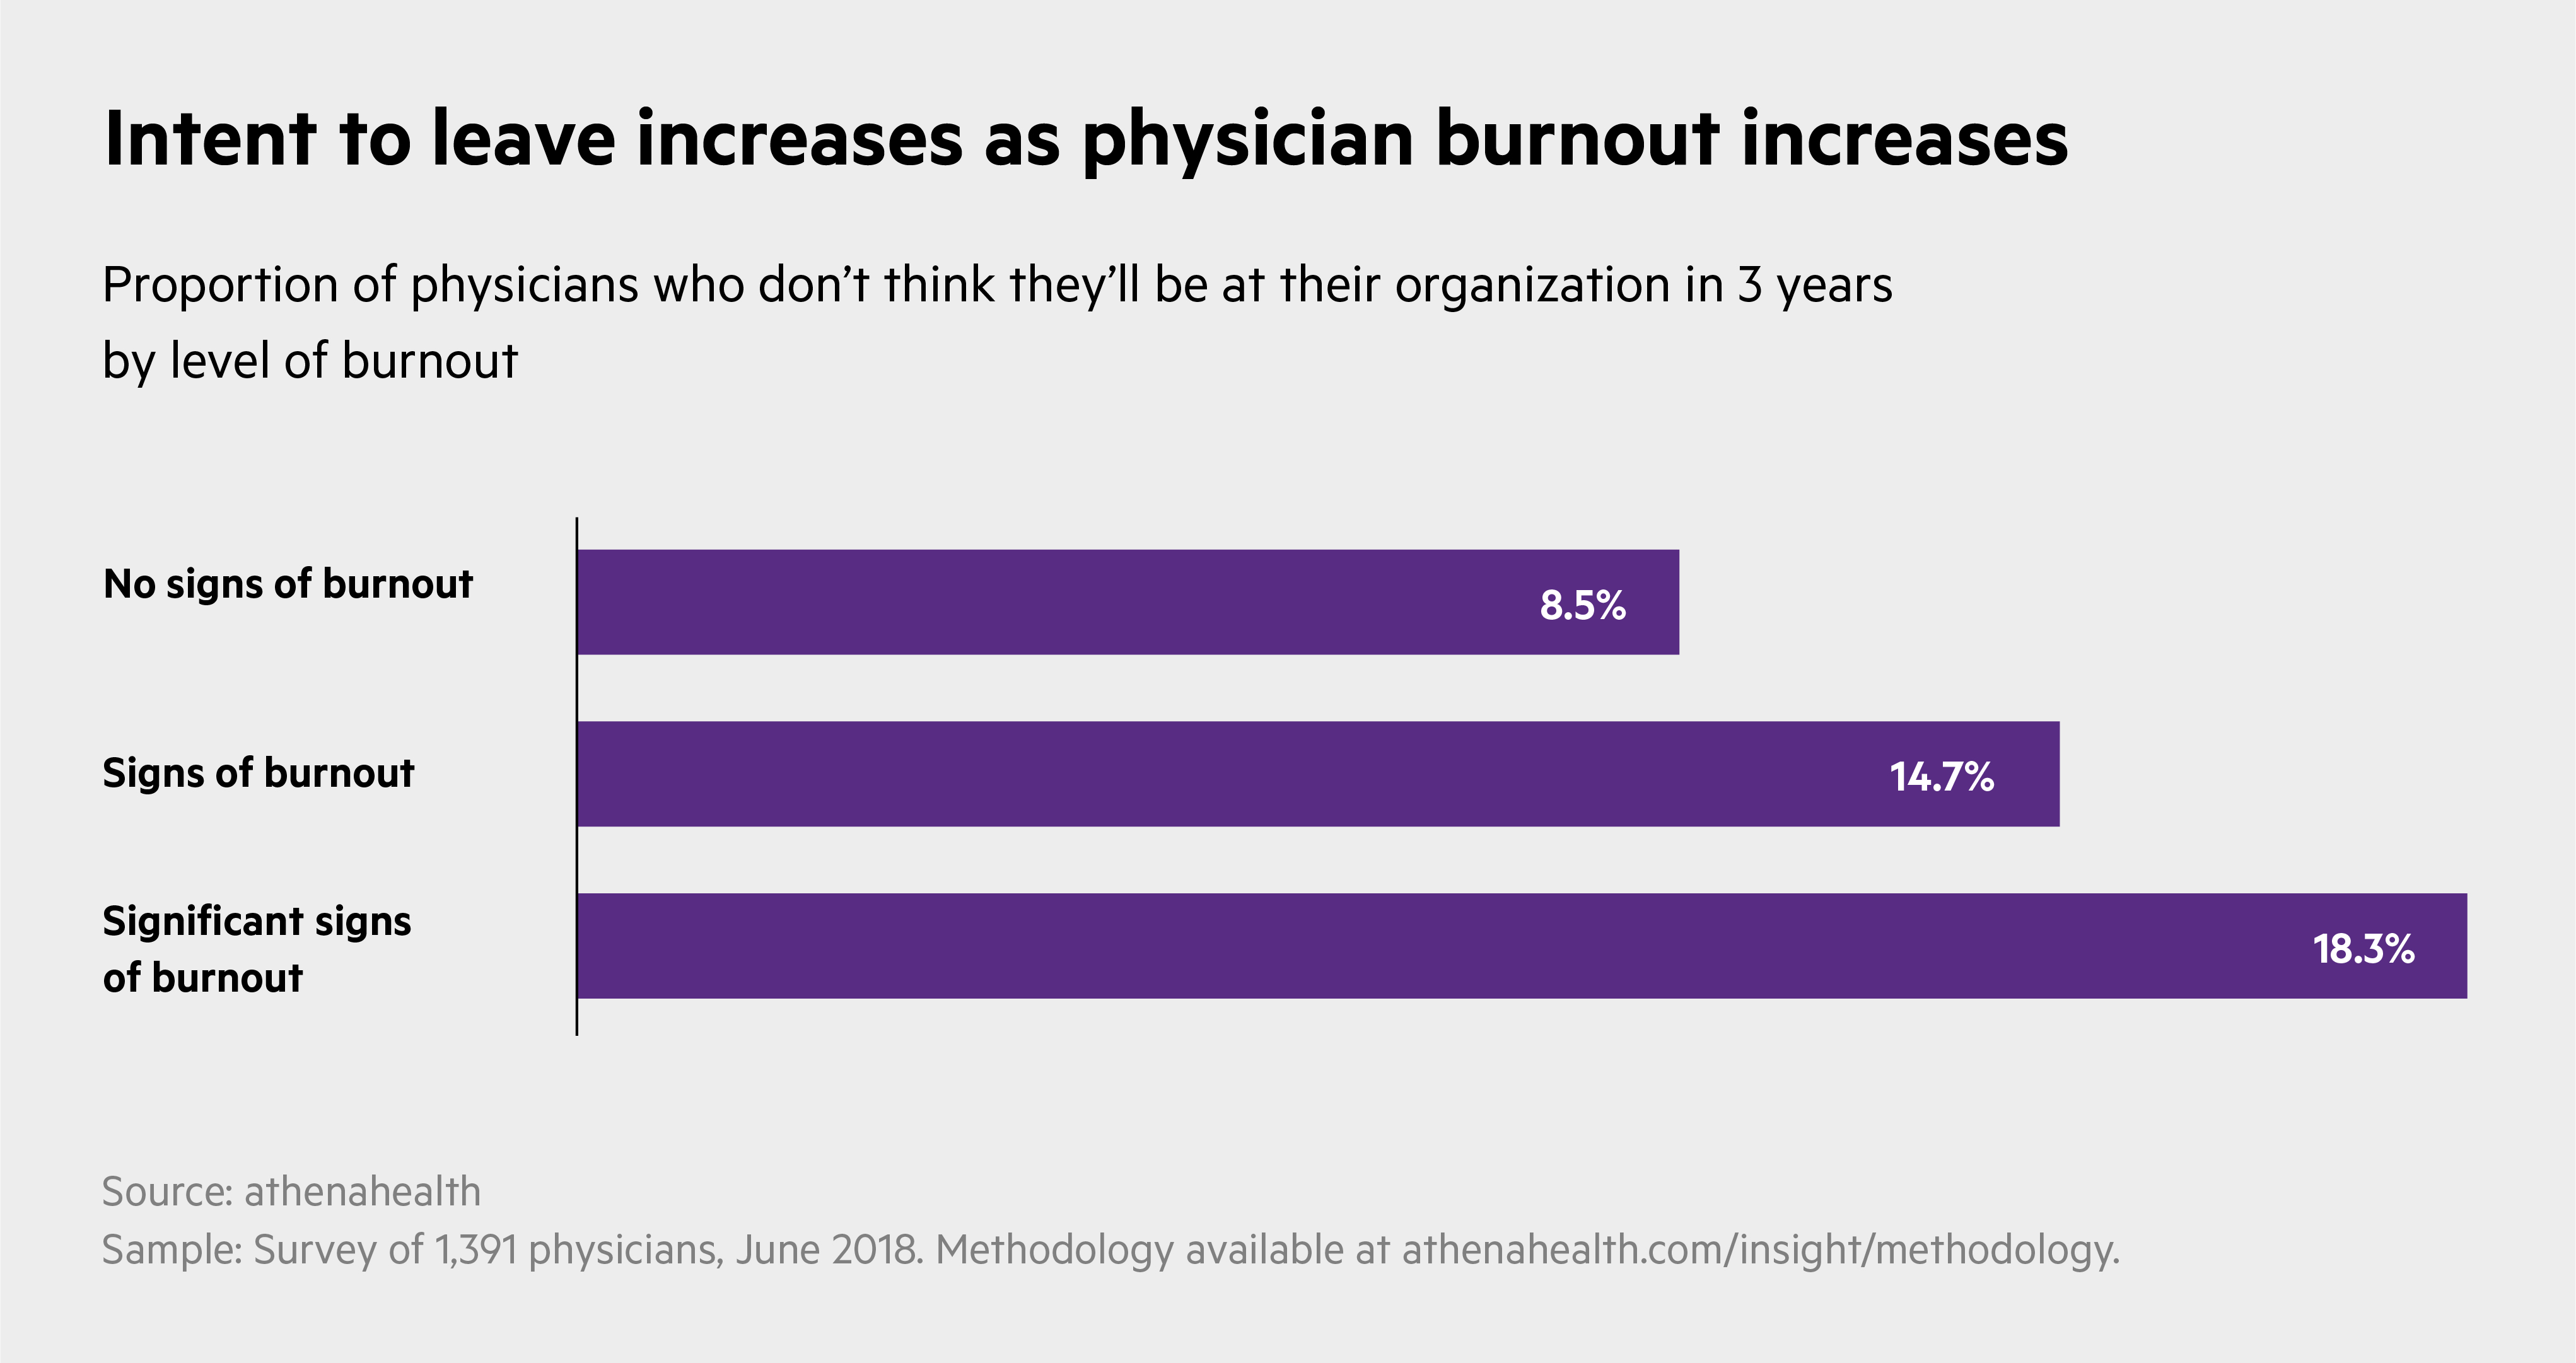 Intent to leave increases as physician burnout increases.